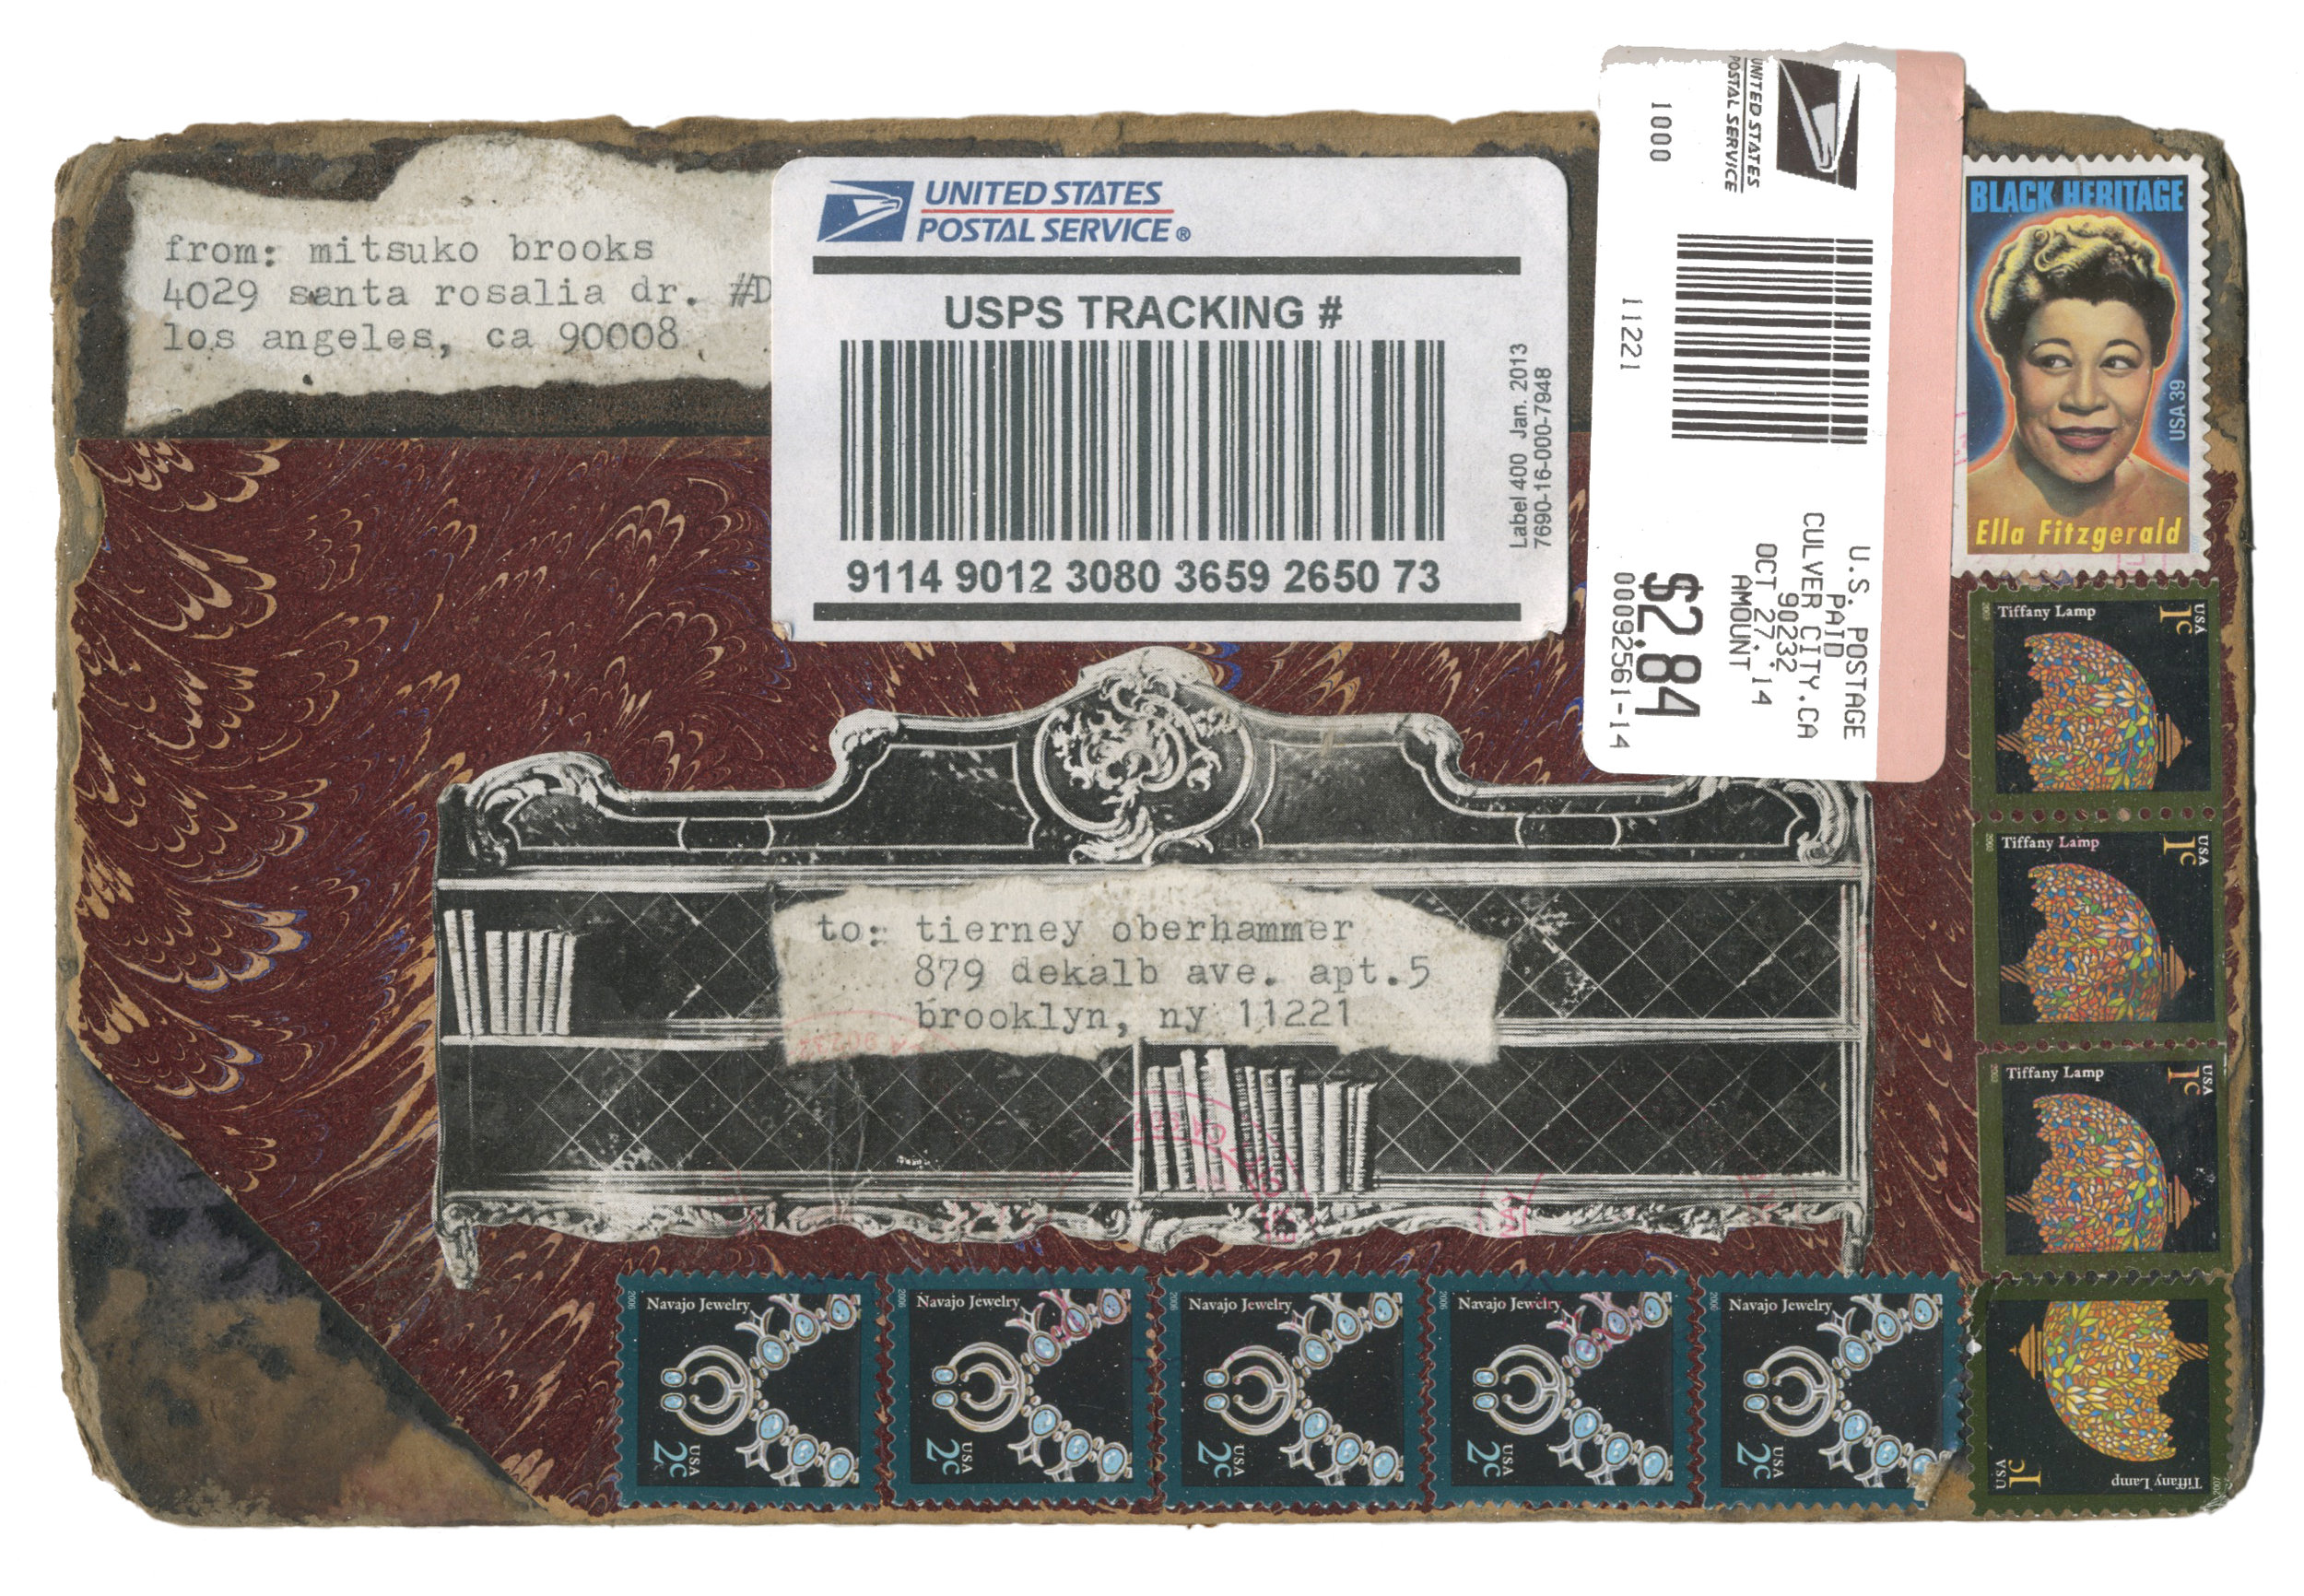 """Mail art to T.O. postmarked Oct. 27, 2014"" [exterior]  4"" x 6""  Discarded book cover, stamps, newsprint, typewriter ink."